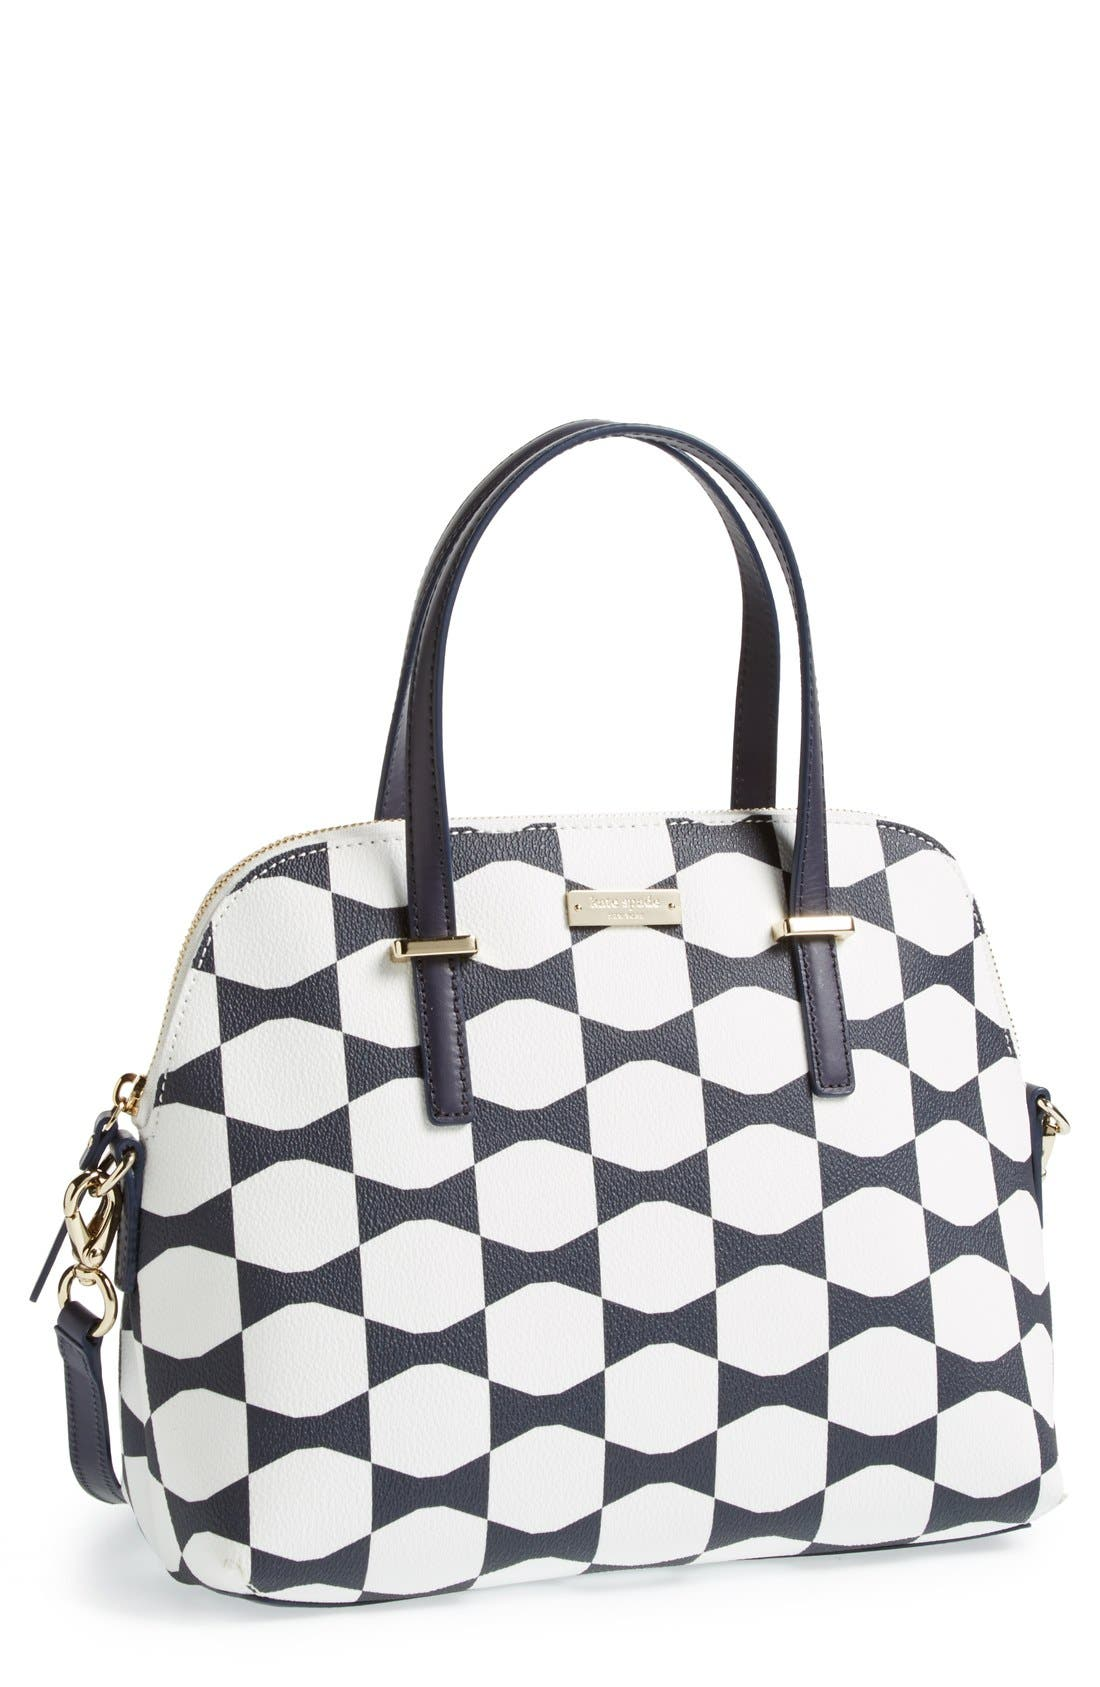 Main Image - kate spade new york 'maise - bow tile' satchel